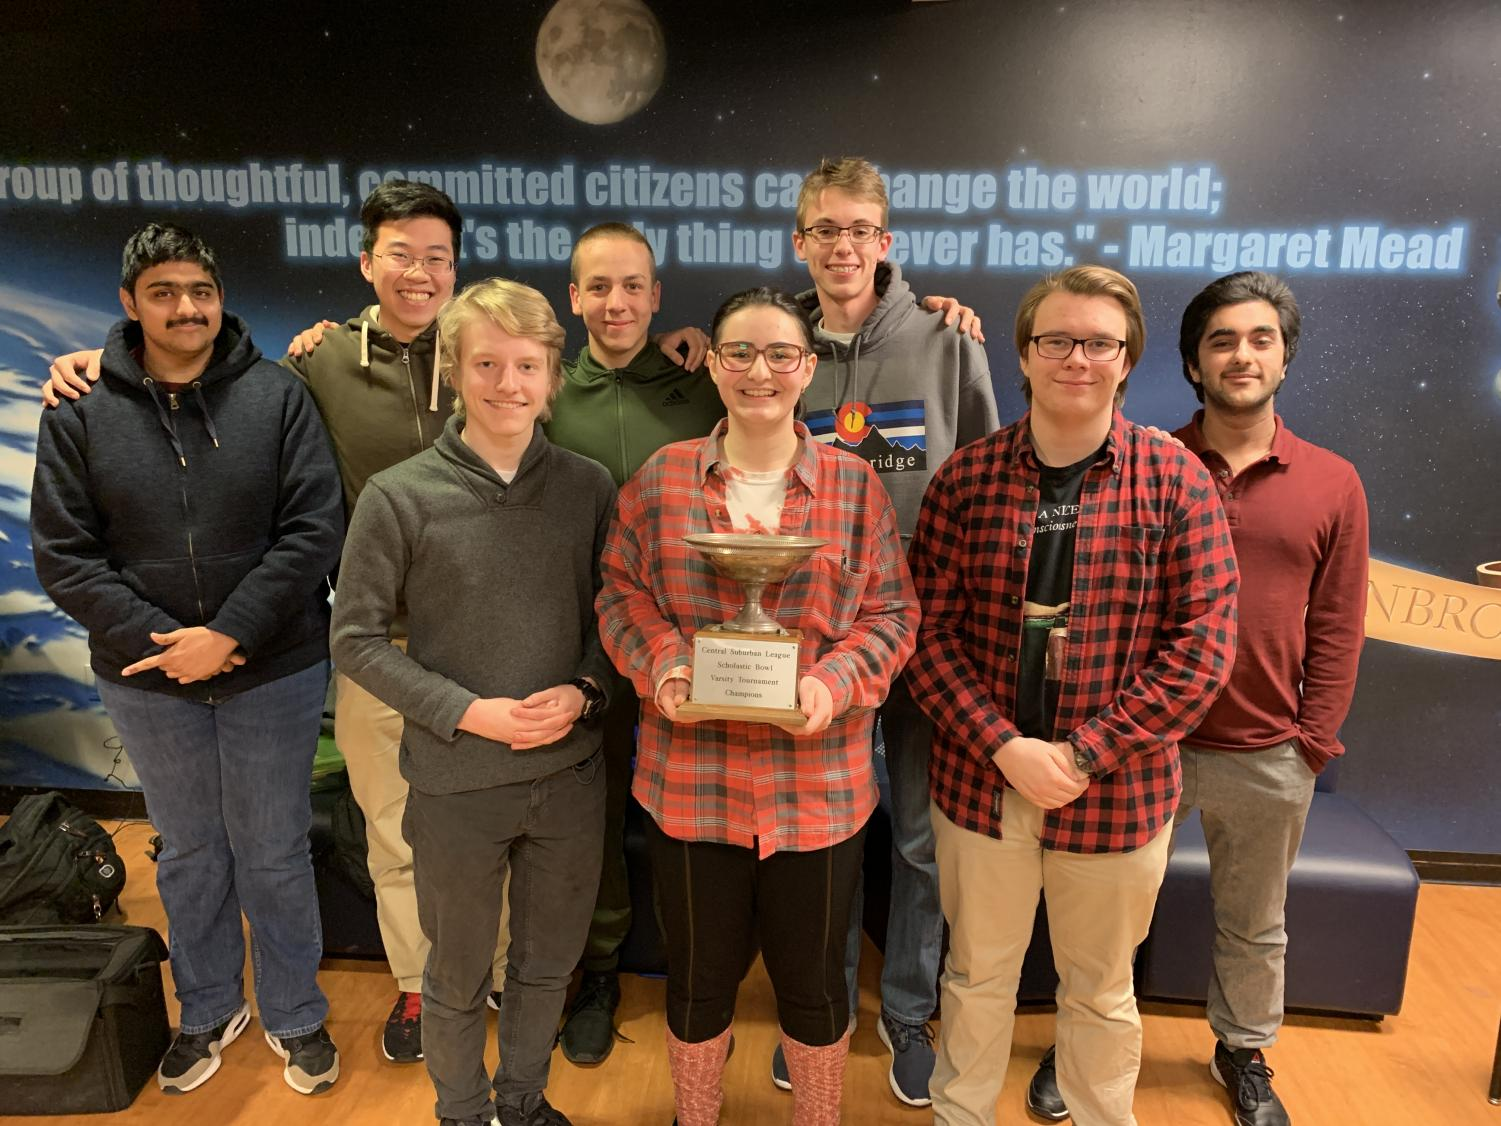 The Scholastic Bowl team posing for a picture after their win.